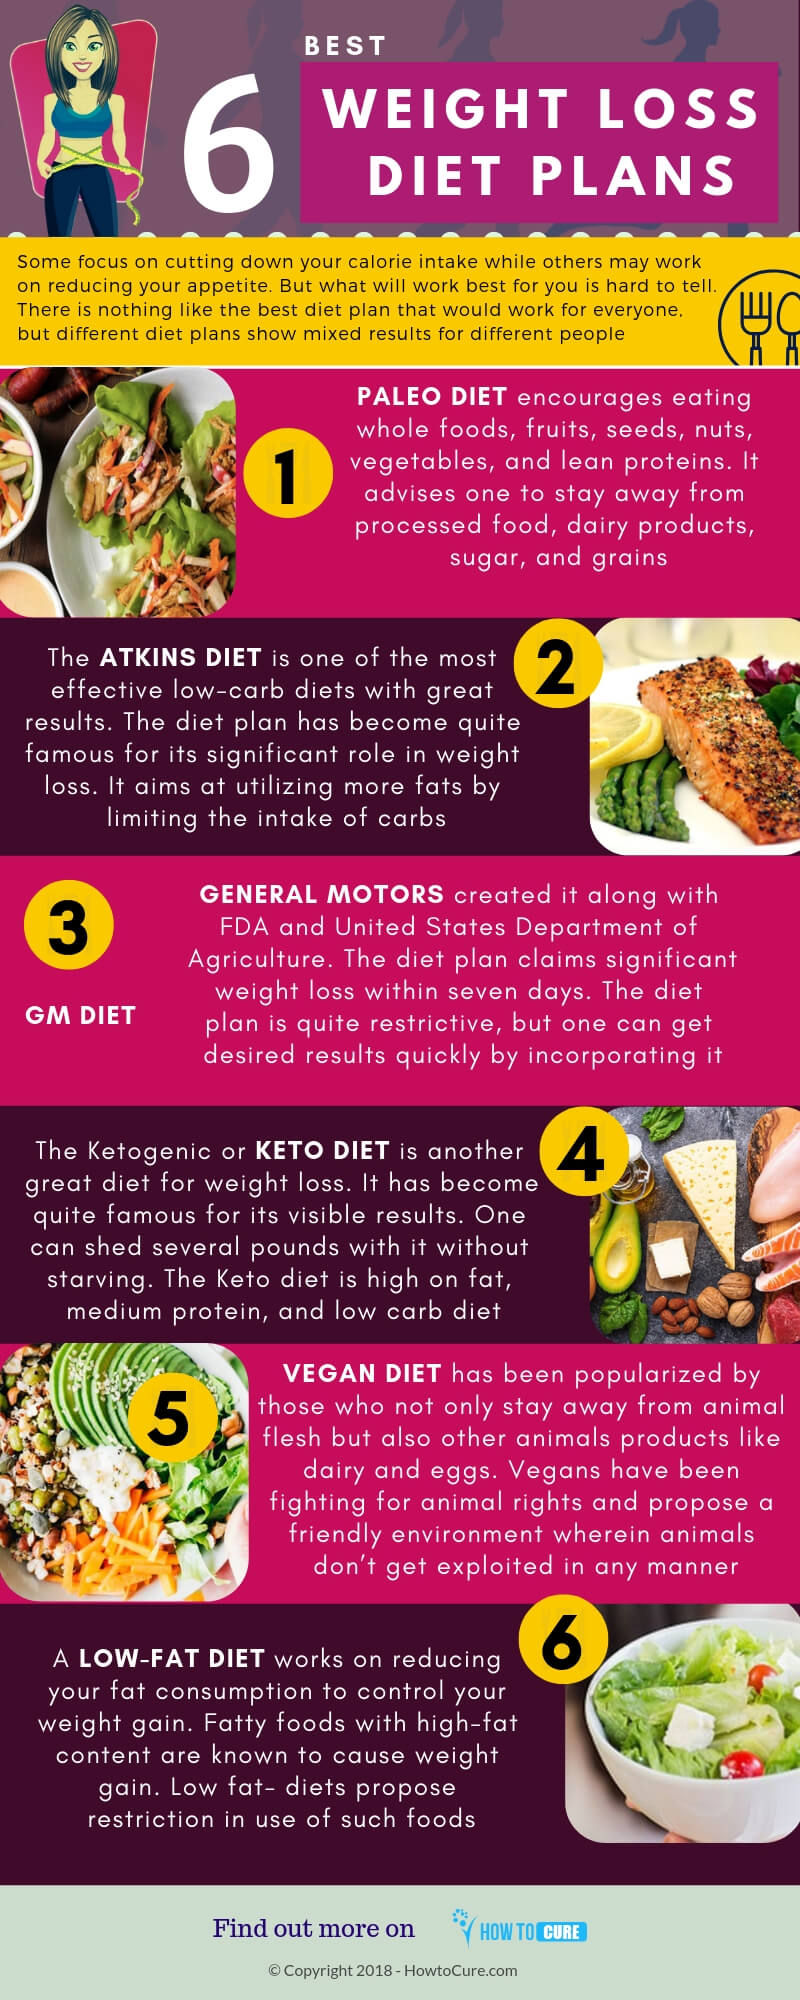 weight loss diet plans-infographic